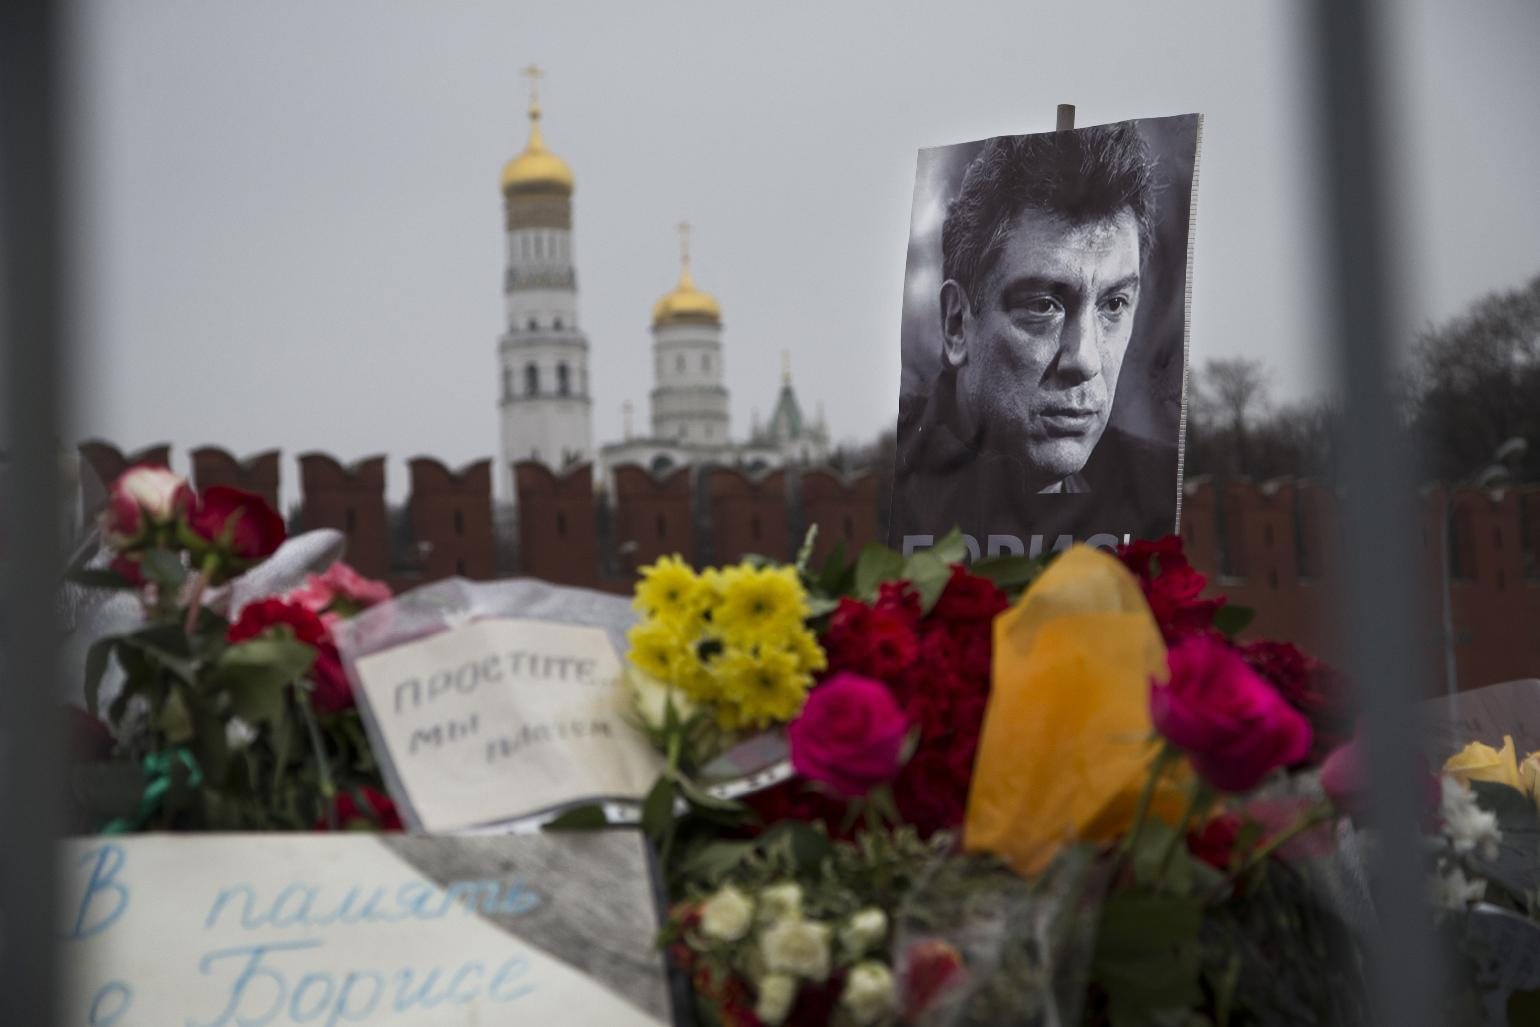 Video reports conflict in probe of Putin critic's slaying